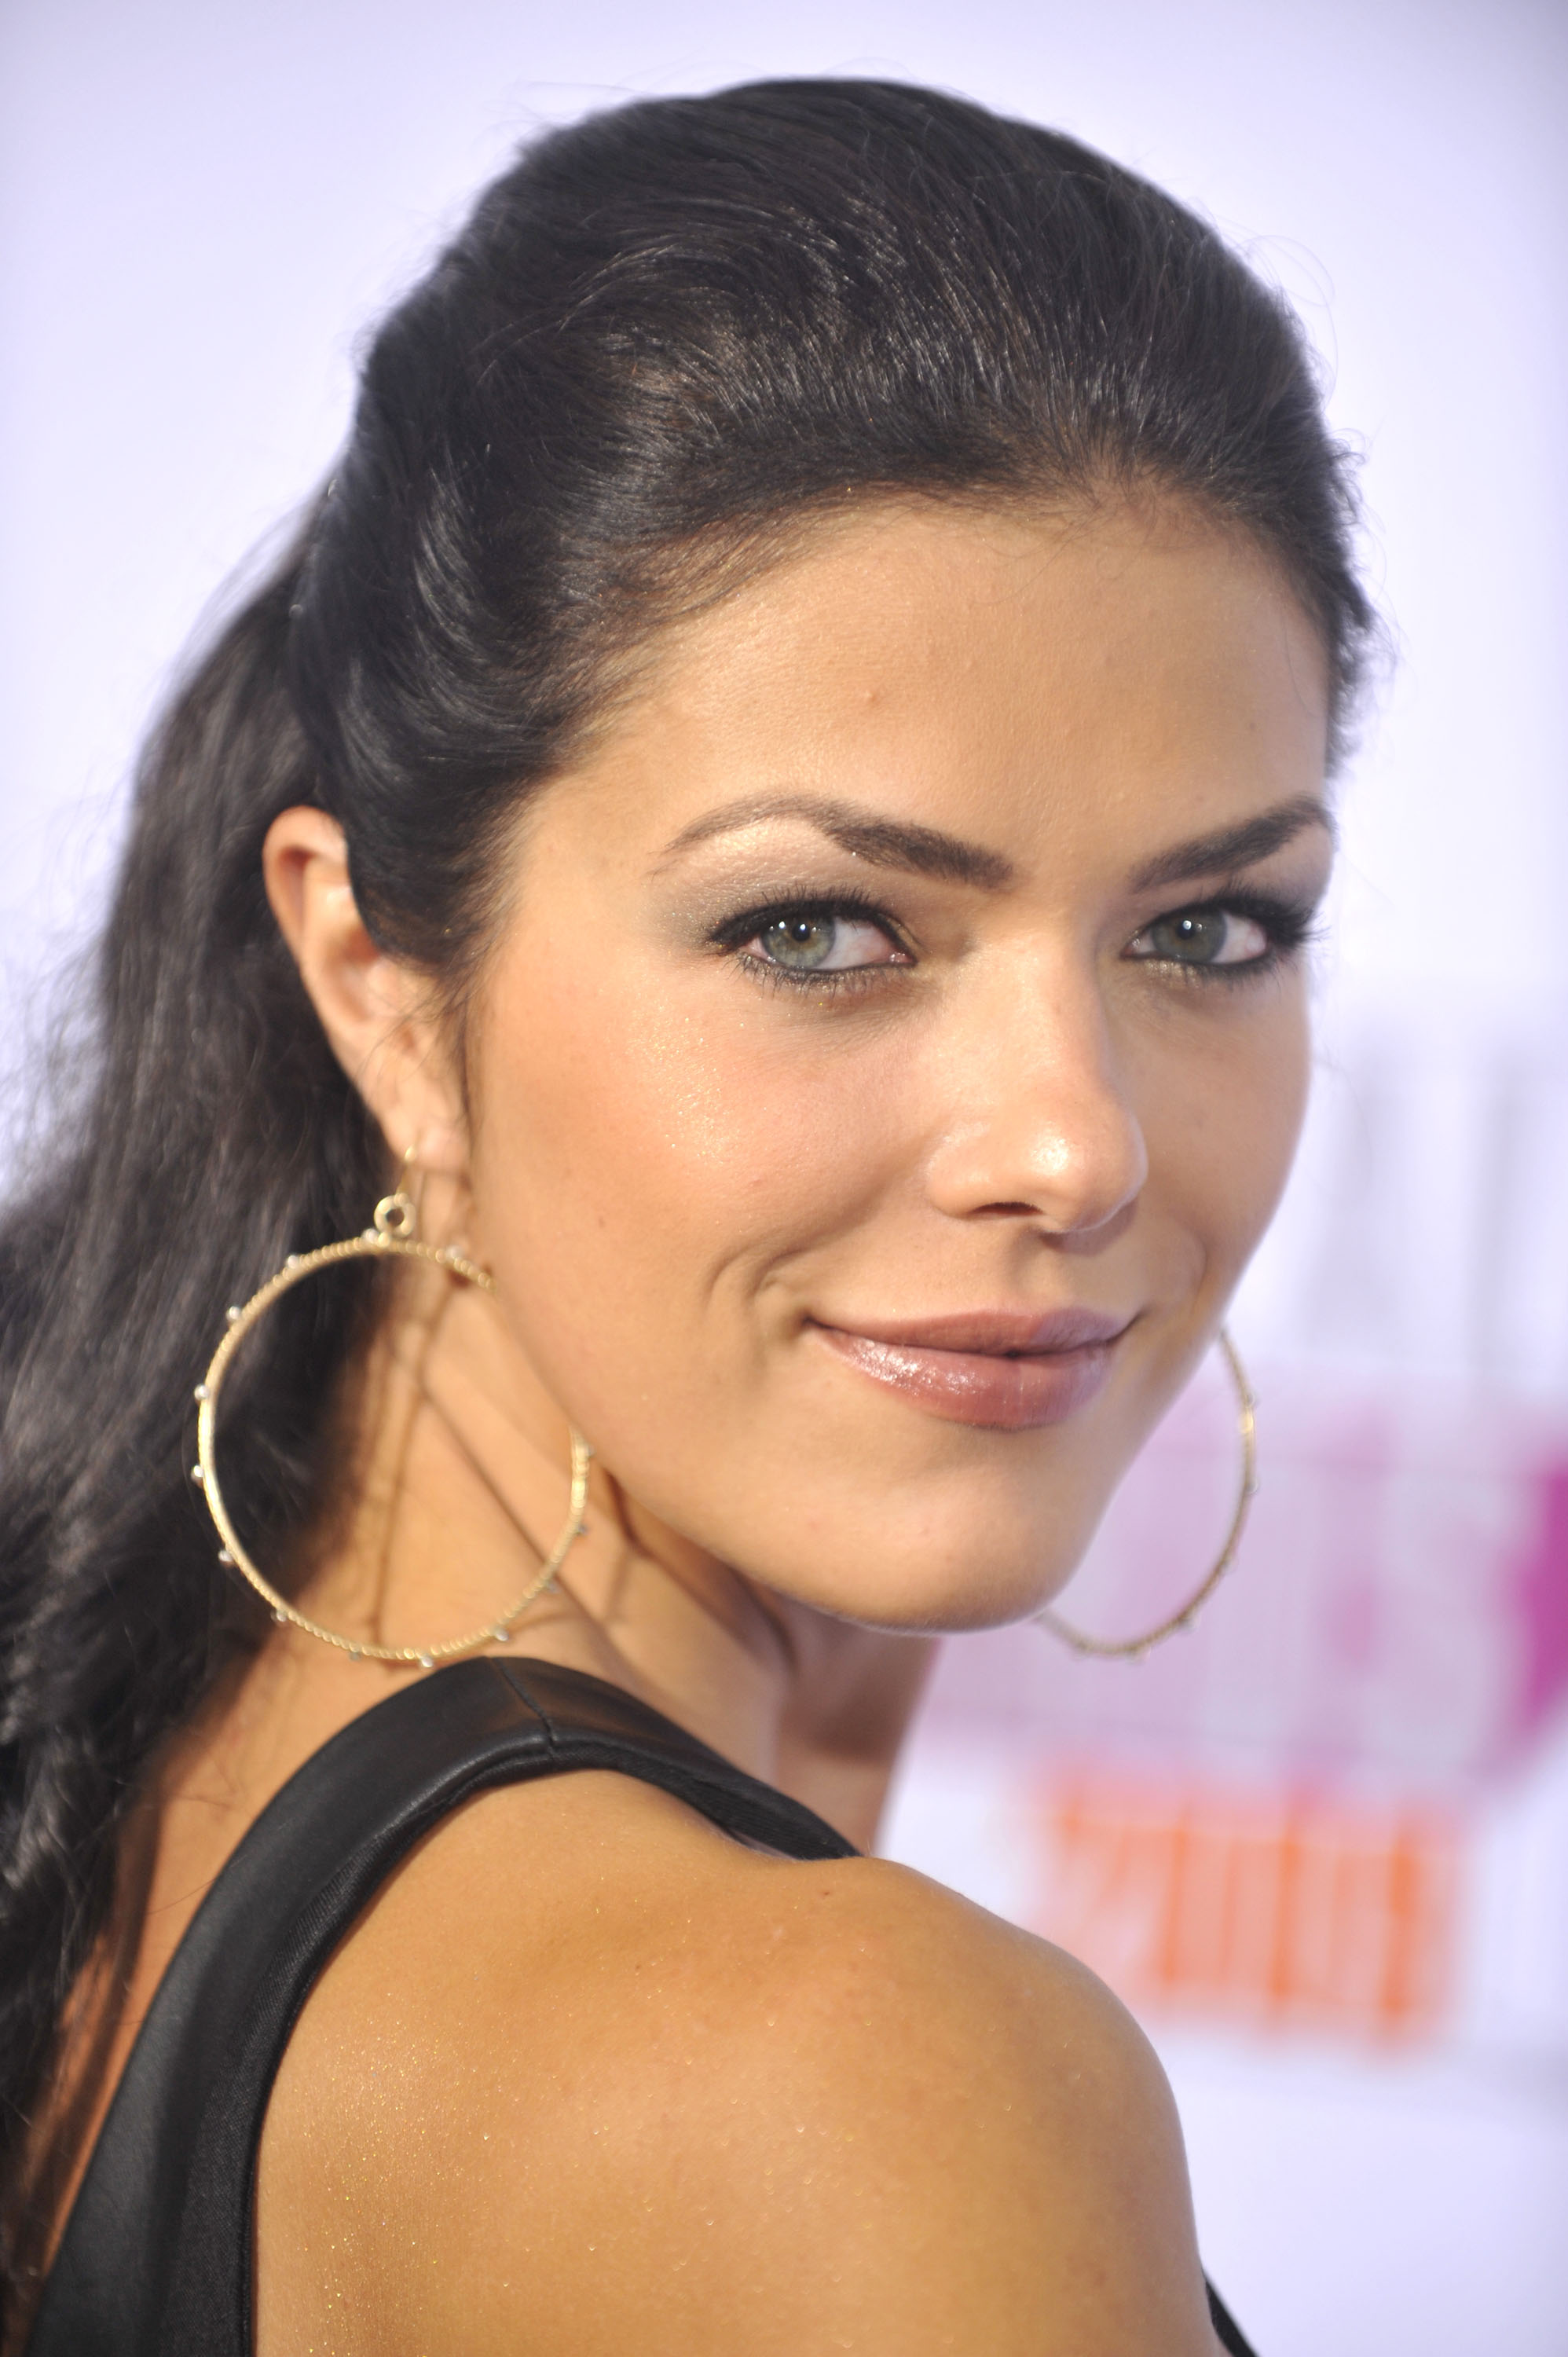 Adrianne Curry Supports Prop 19 Without Smoking Weed On TV